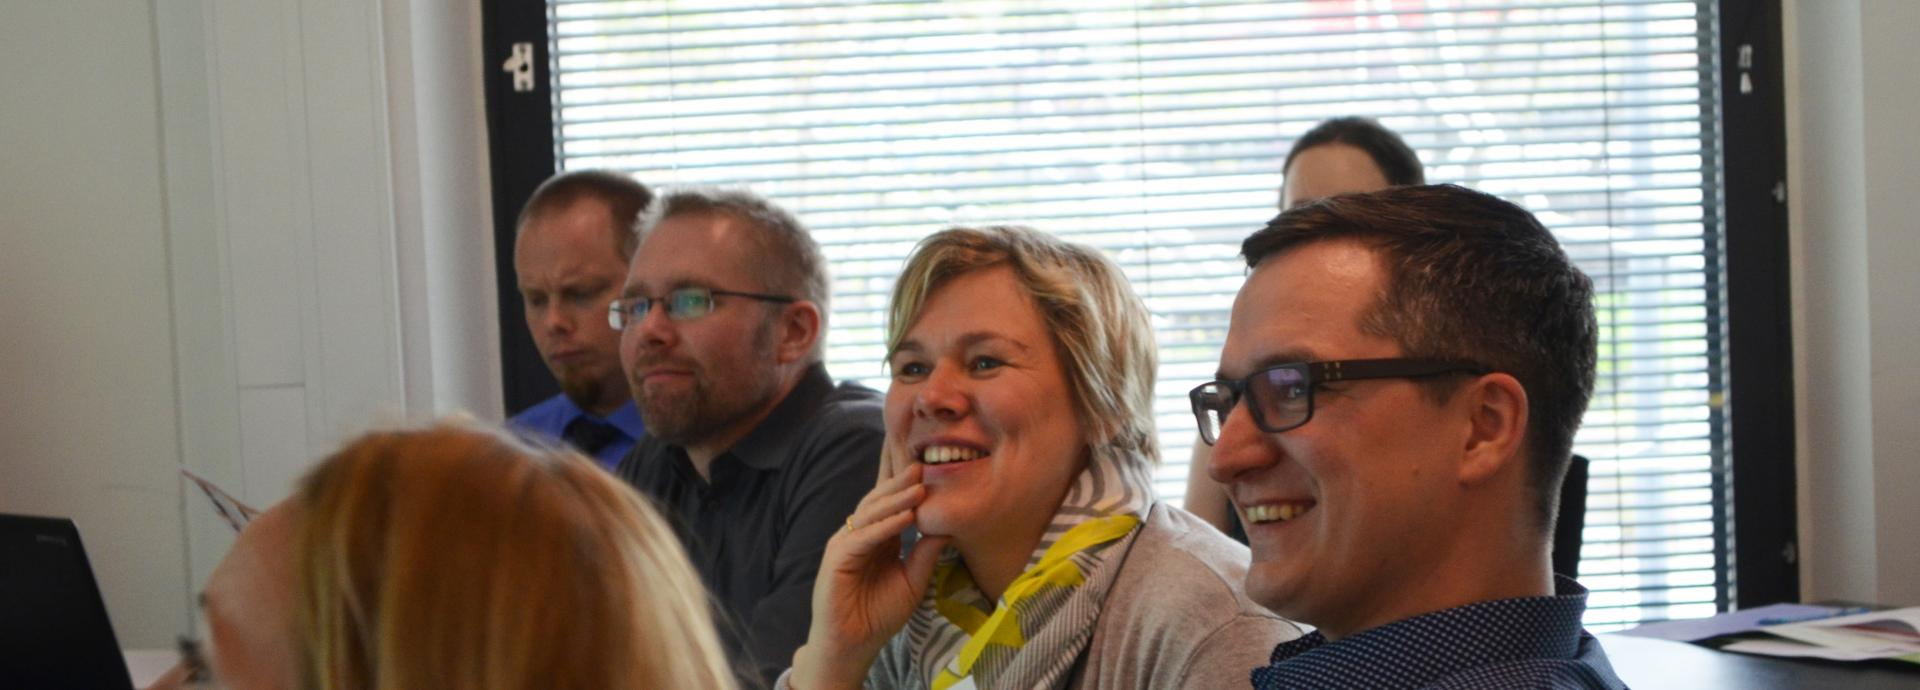 Three men and one woman looking at something during orientation and laughing.